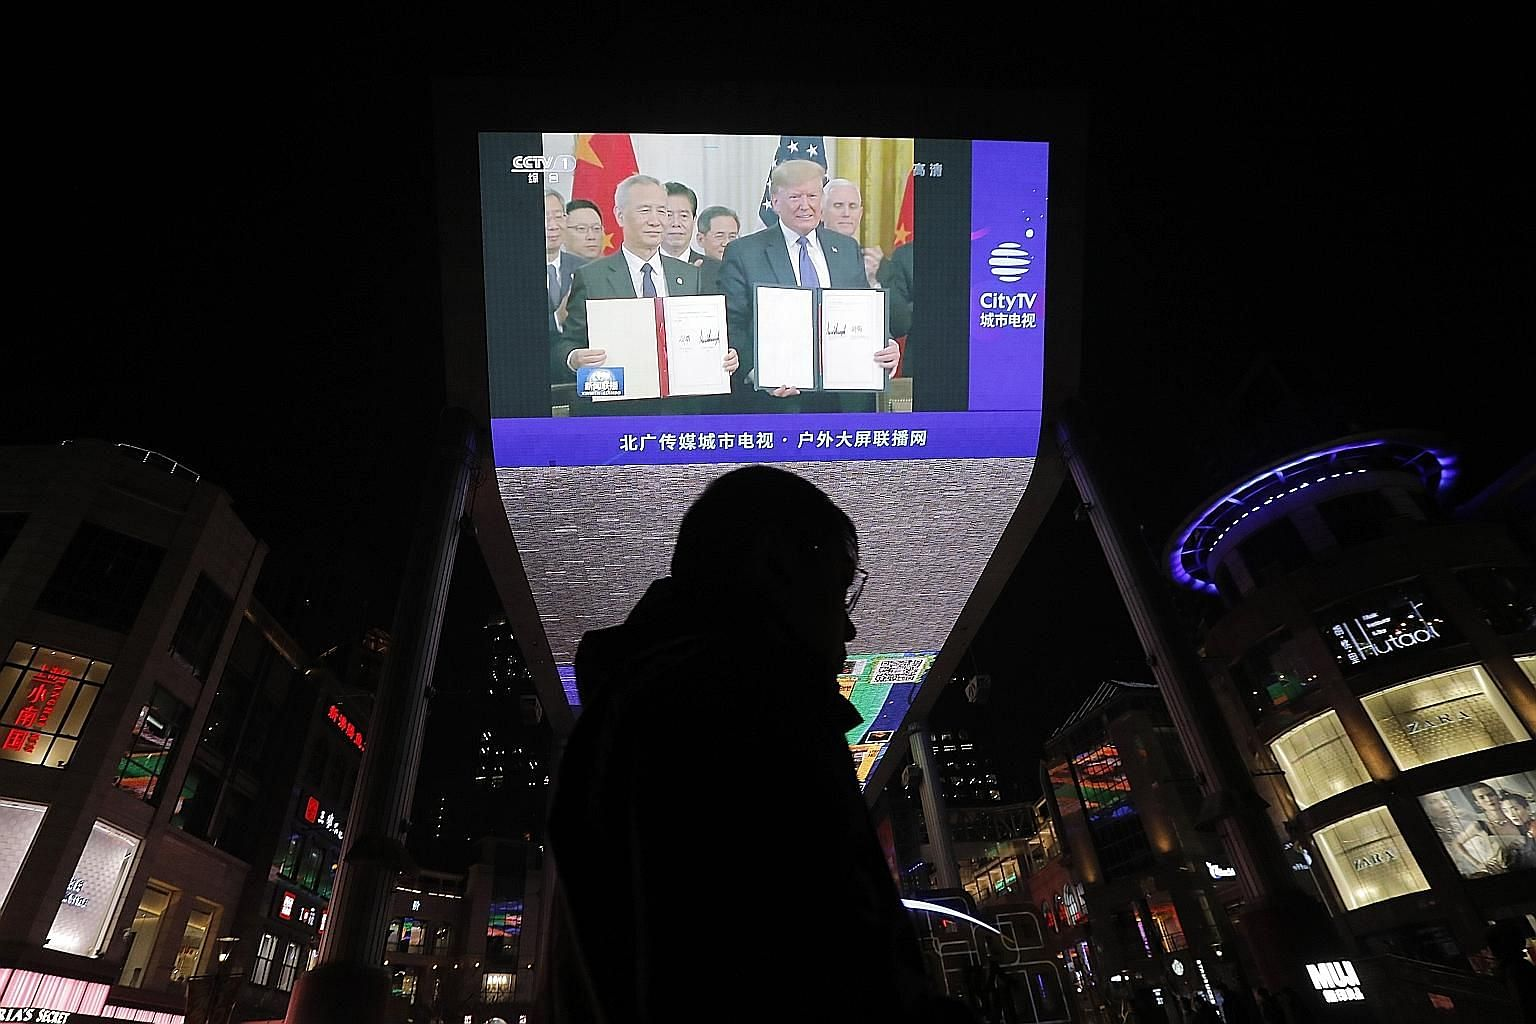 A TV screen outside a shopping mall in Beijing showing US President Donald Trump and Chinese Vice-Premier Liu He during the signing of the phase one trade agreement last Thursday. Mr Trump and Chinese Vice-Premier Han Zheng are expected to deliver sp